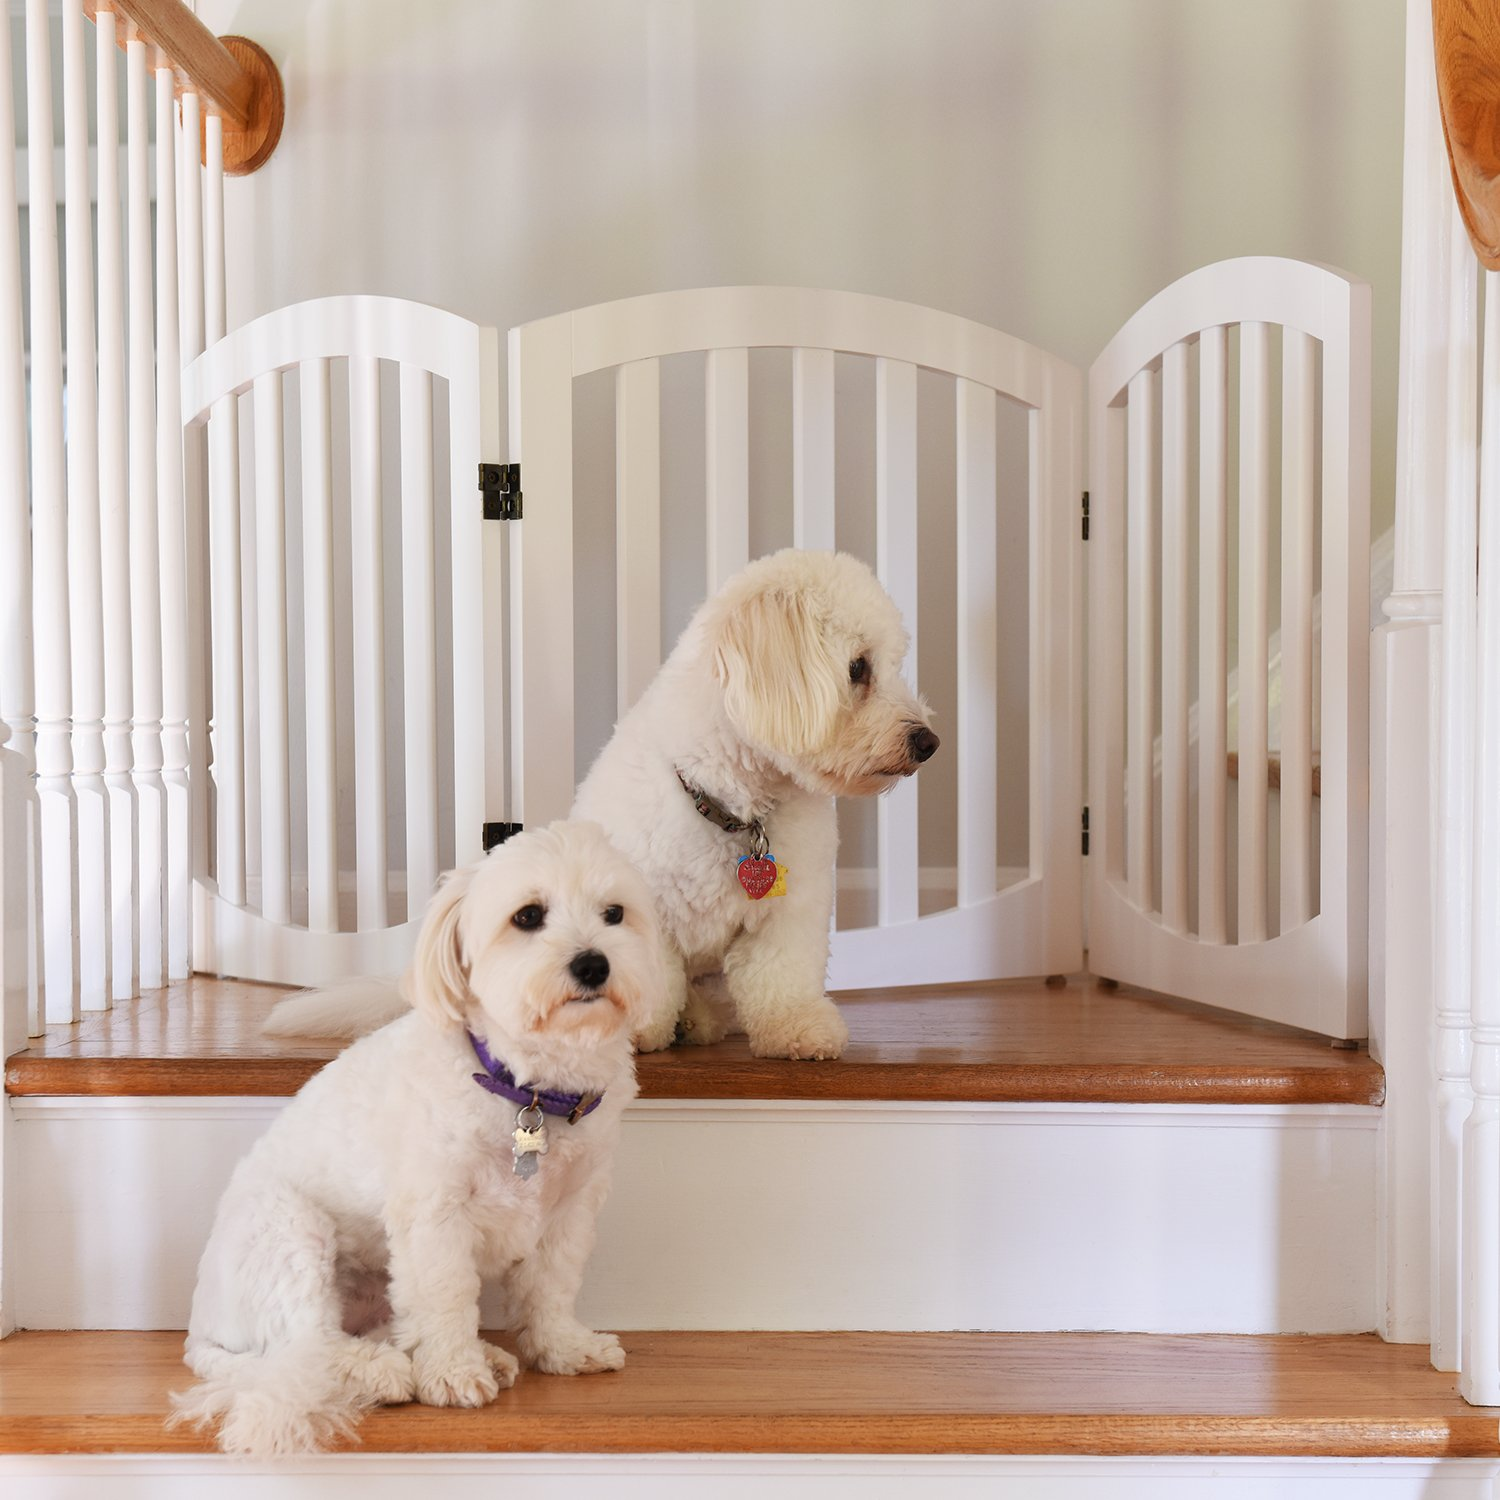 Arf Pets Free Standing Wood Dog Gate, Step Over Pet Fence, Foldable, Adjustable - White by Arf Pets